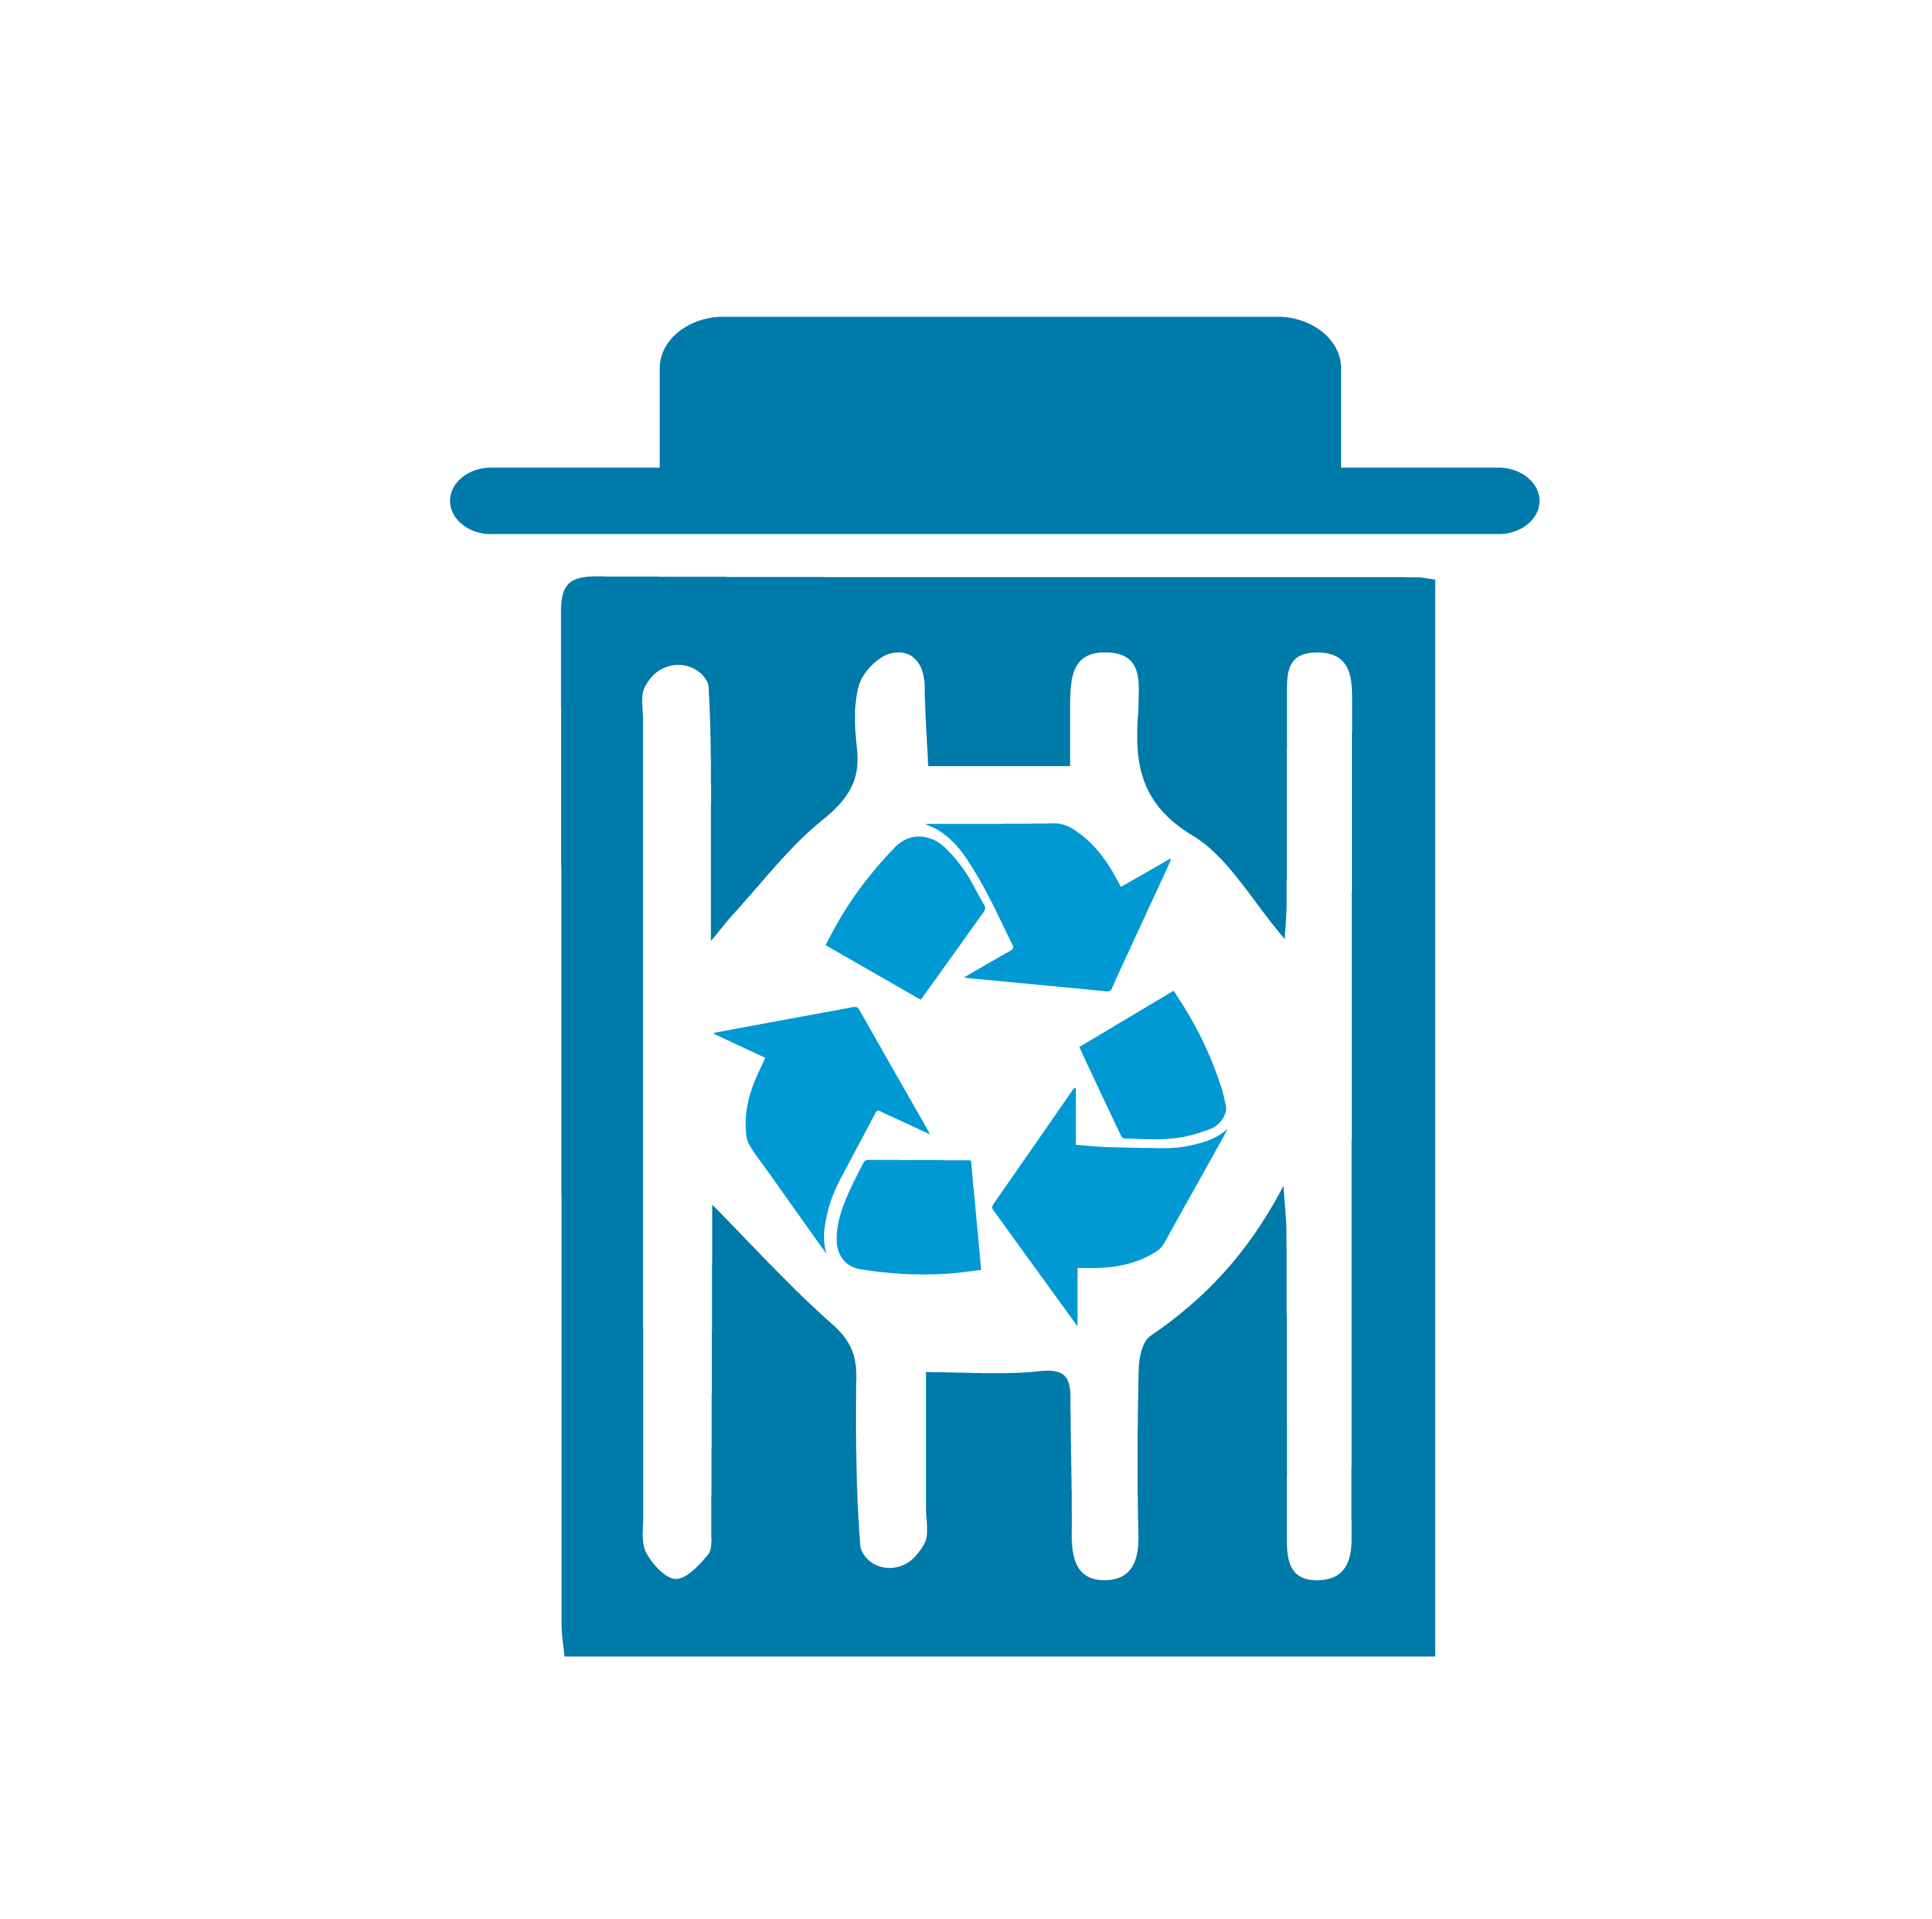 reducing waste icon